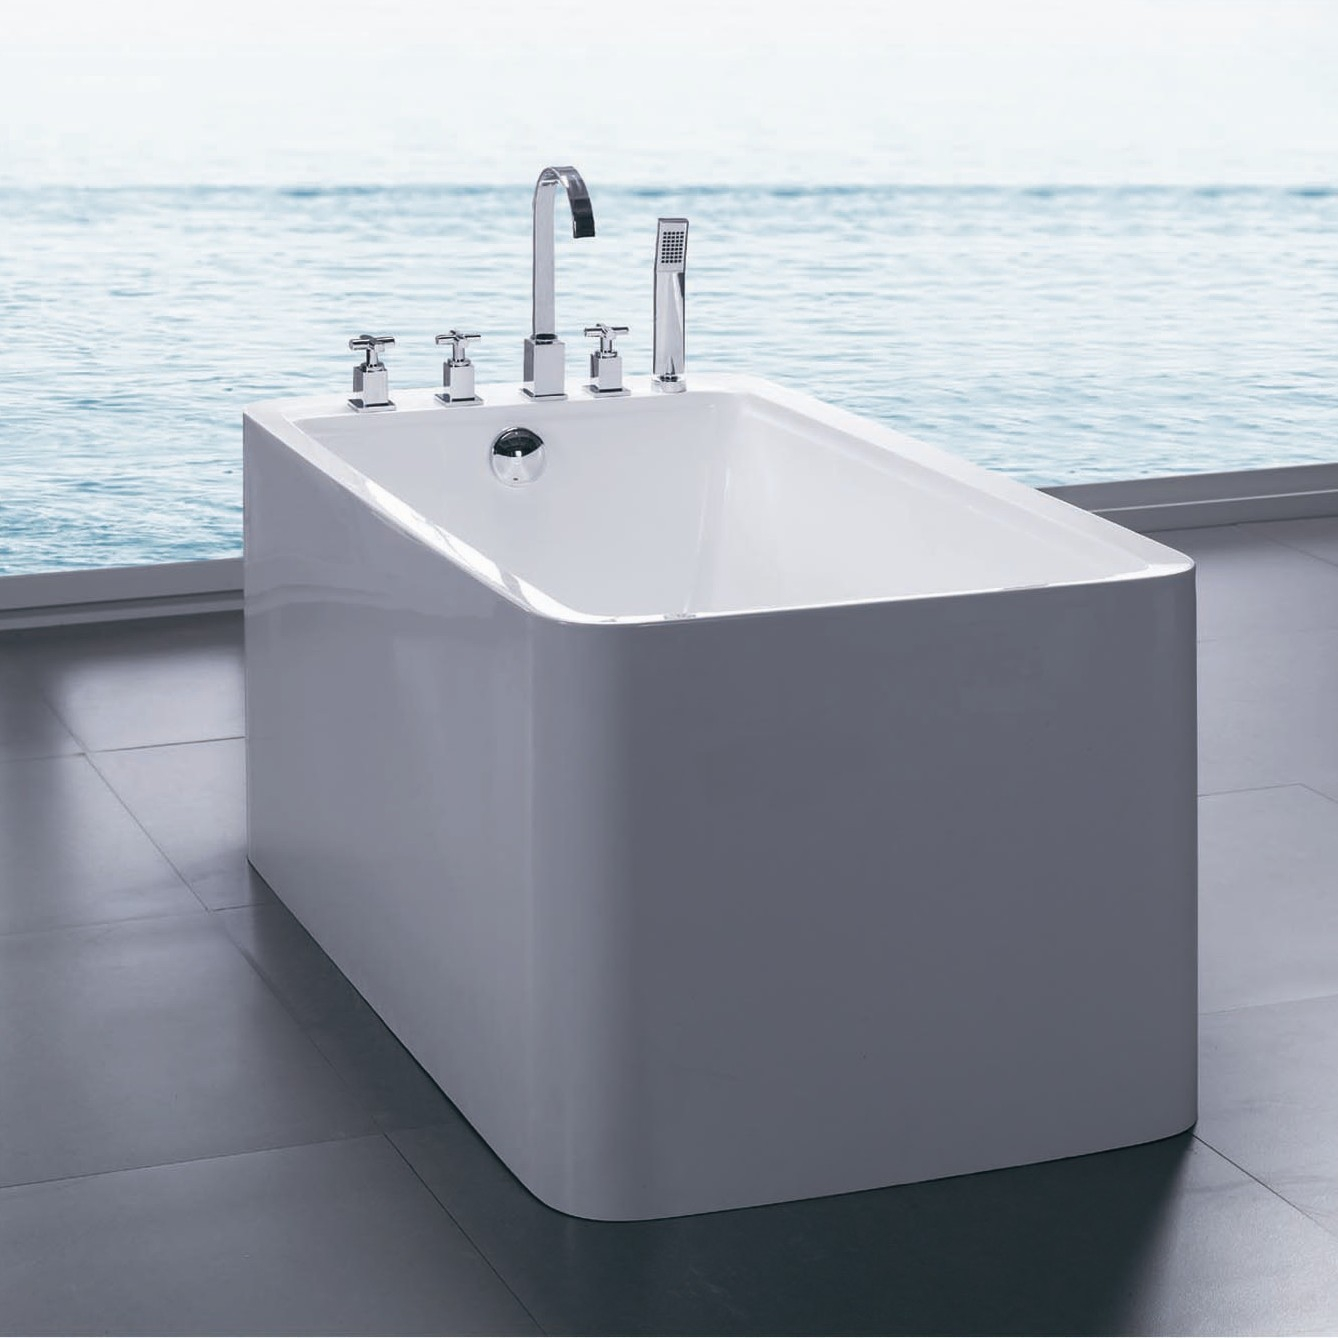 Aquatica Purescape 55 X 30 Freestanding Acrylic Bathtub Bathtubs inside proportions 1338 X 1338